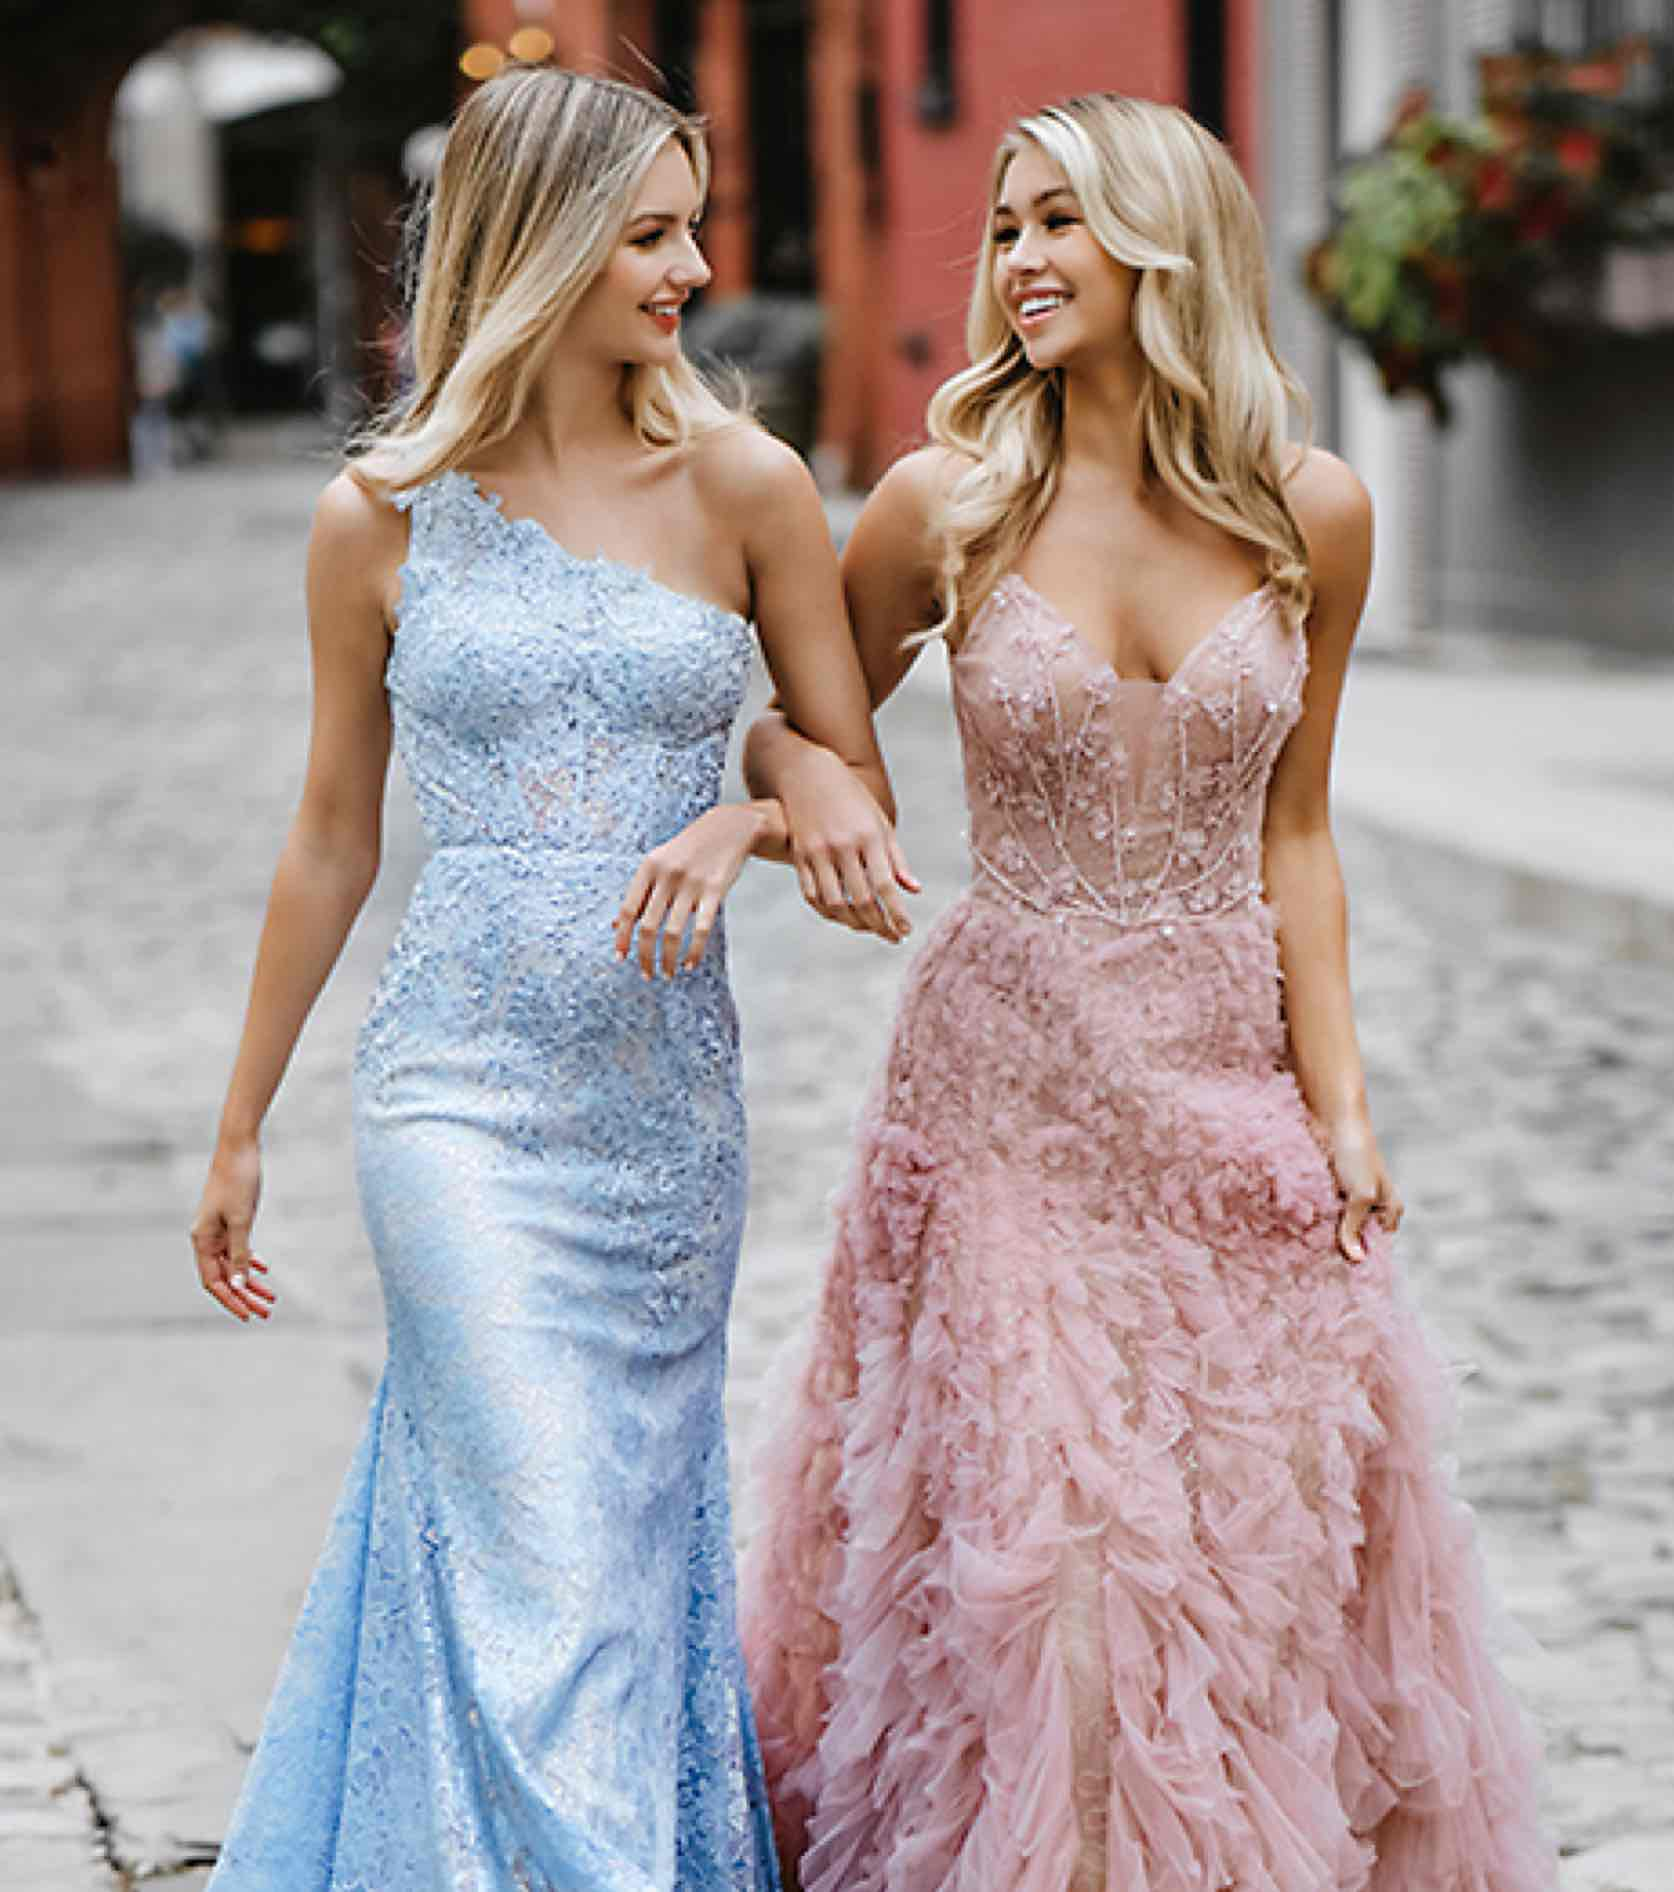 Models in shimmery beaded pink and blue Mac Duggal dress